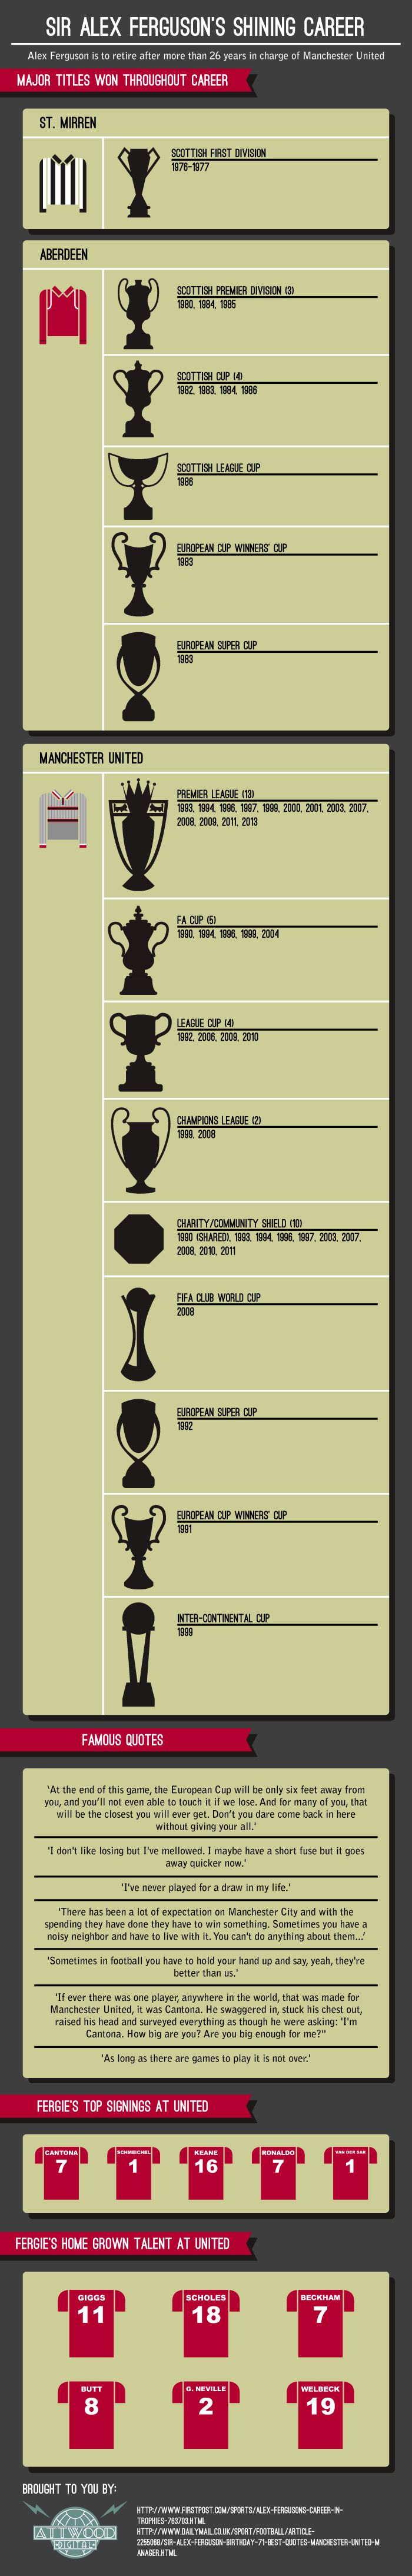 An infographic on Sir Alex Ferguson's Career through the trophies he's won and players he discovered.